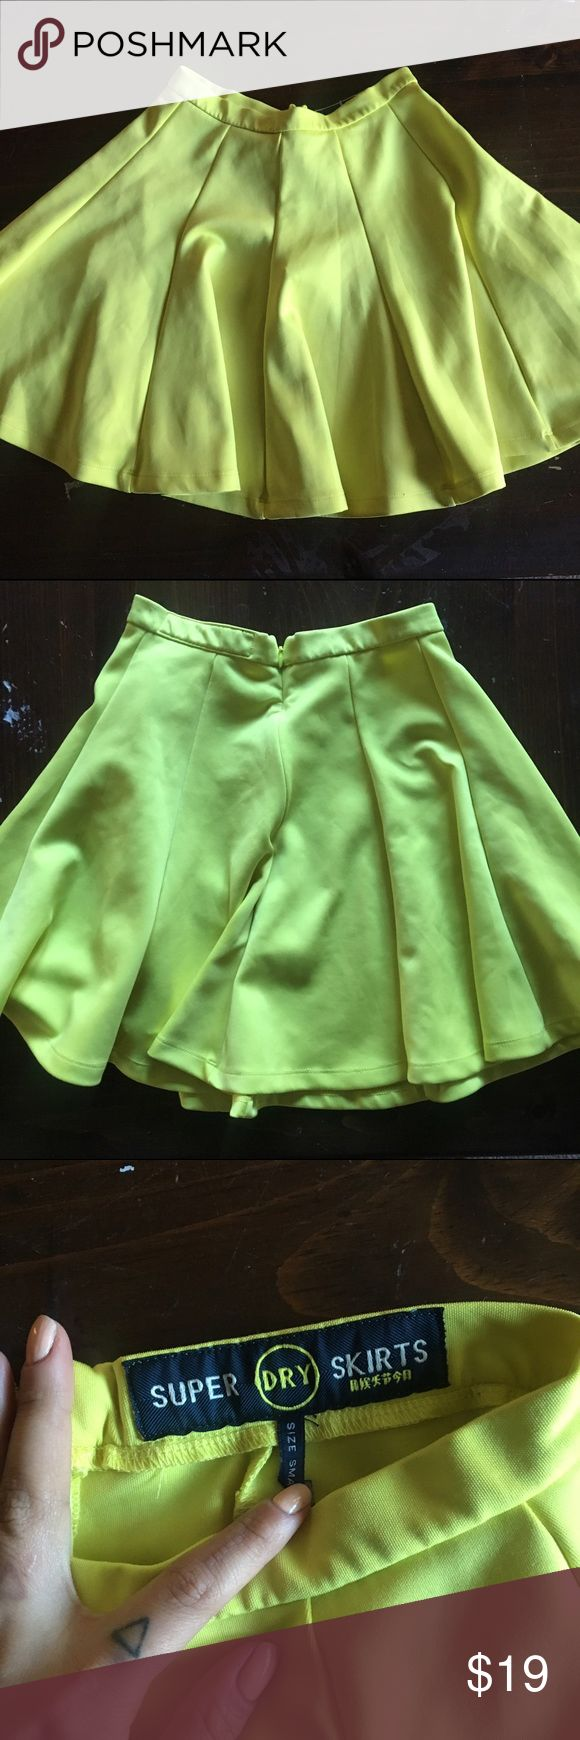 SUPERDRY scubaknit high waist pleated circle skirt worn once! neon yellow. scuba knit fabric. high waist, pleated style. back zip. Superdry Skirts Circle & Skater